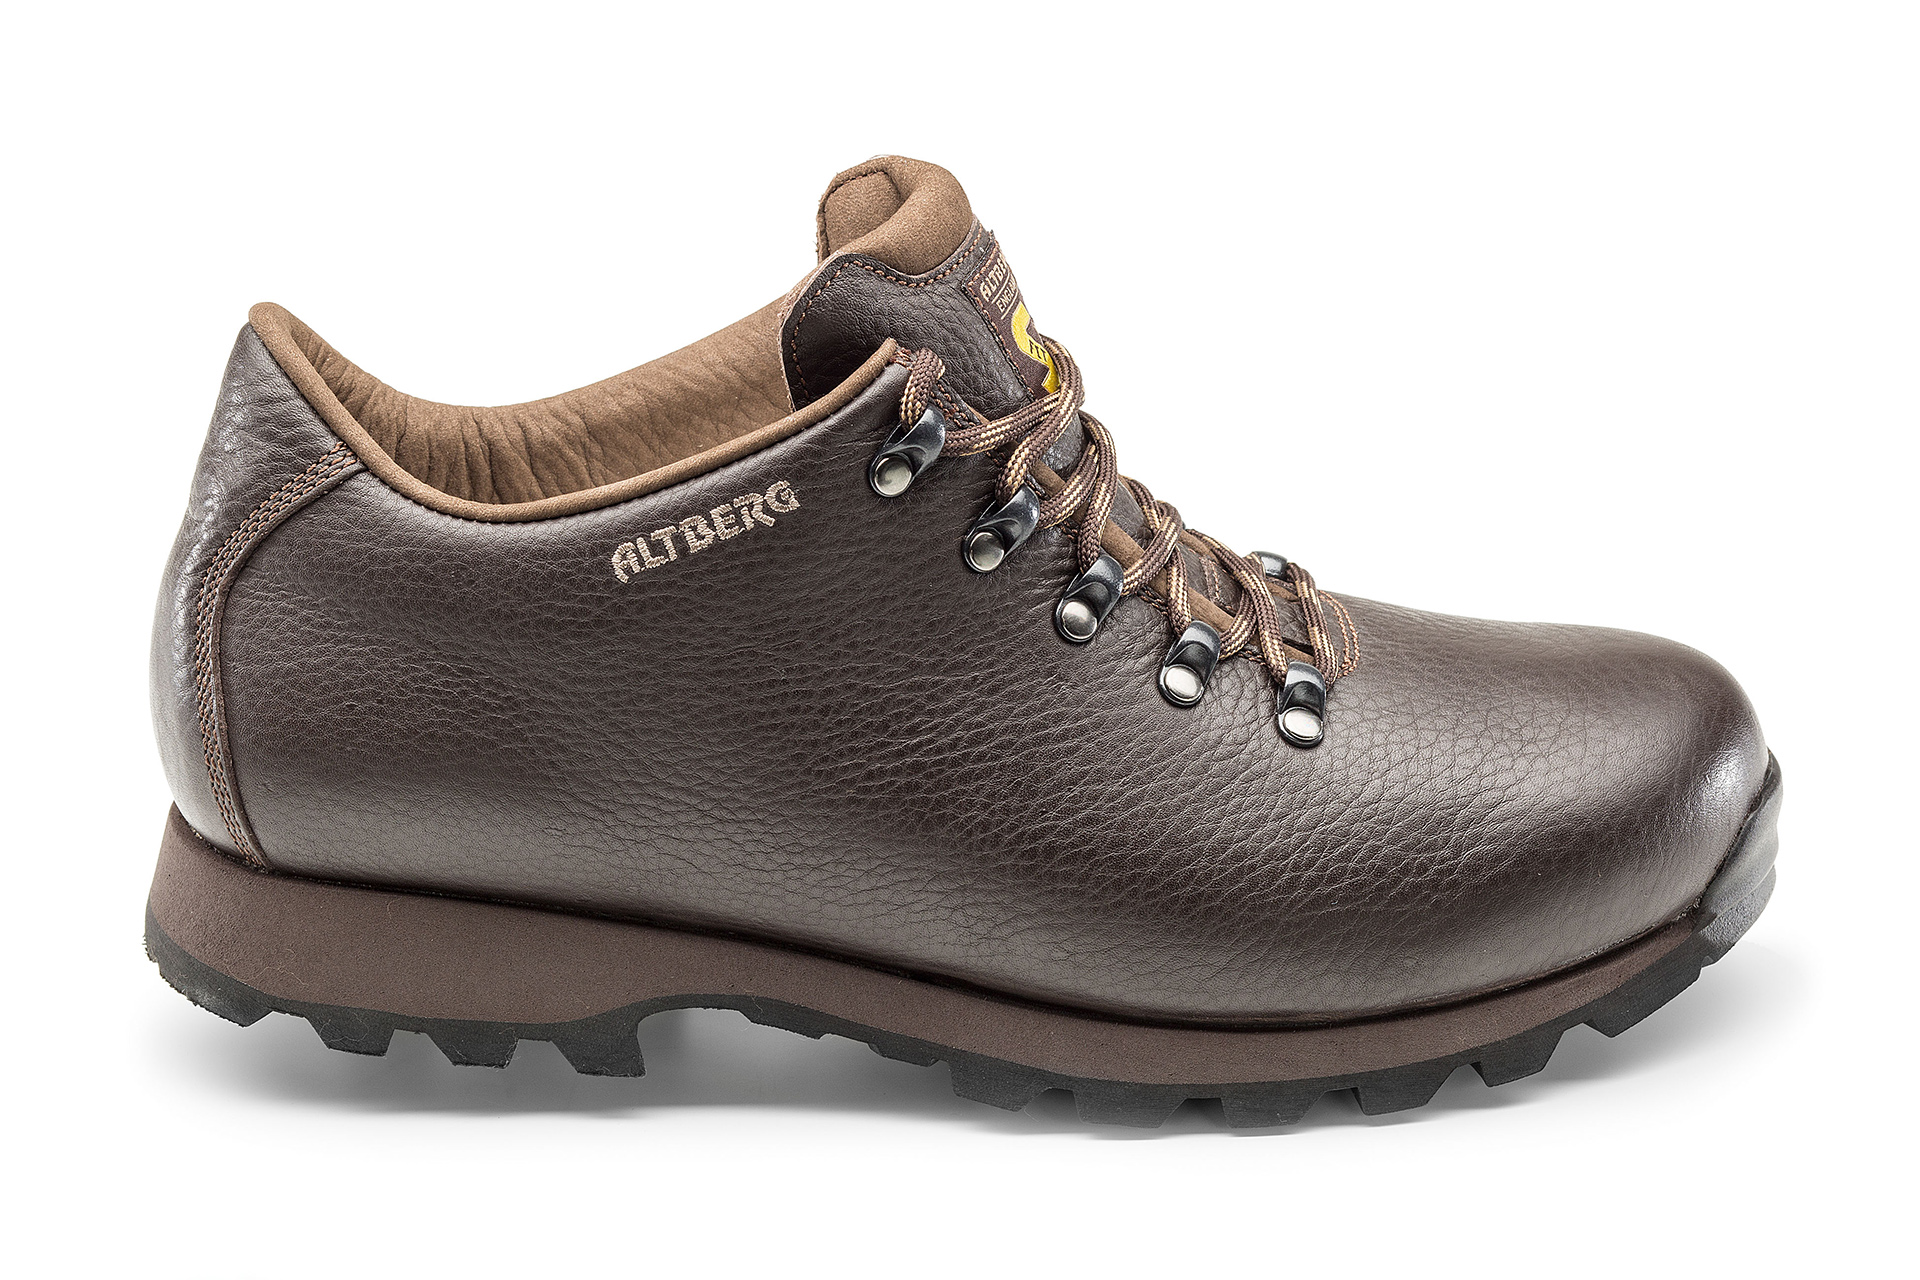 Altberg Launches Range Of Walking Shoes